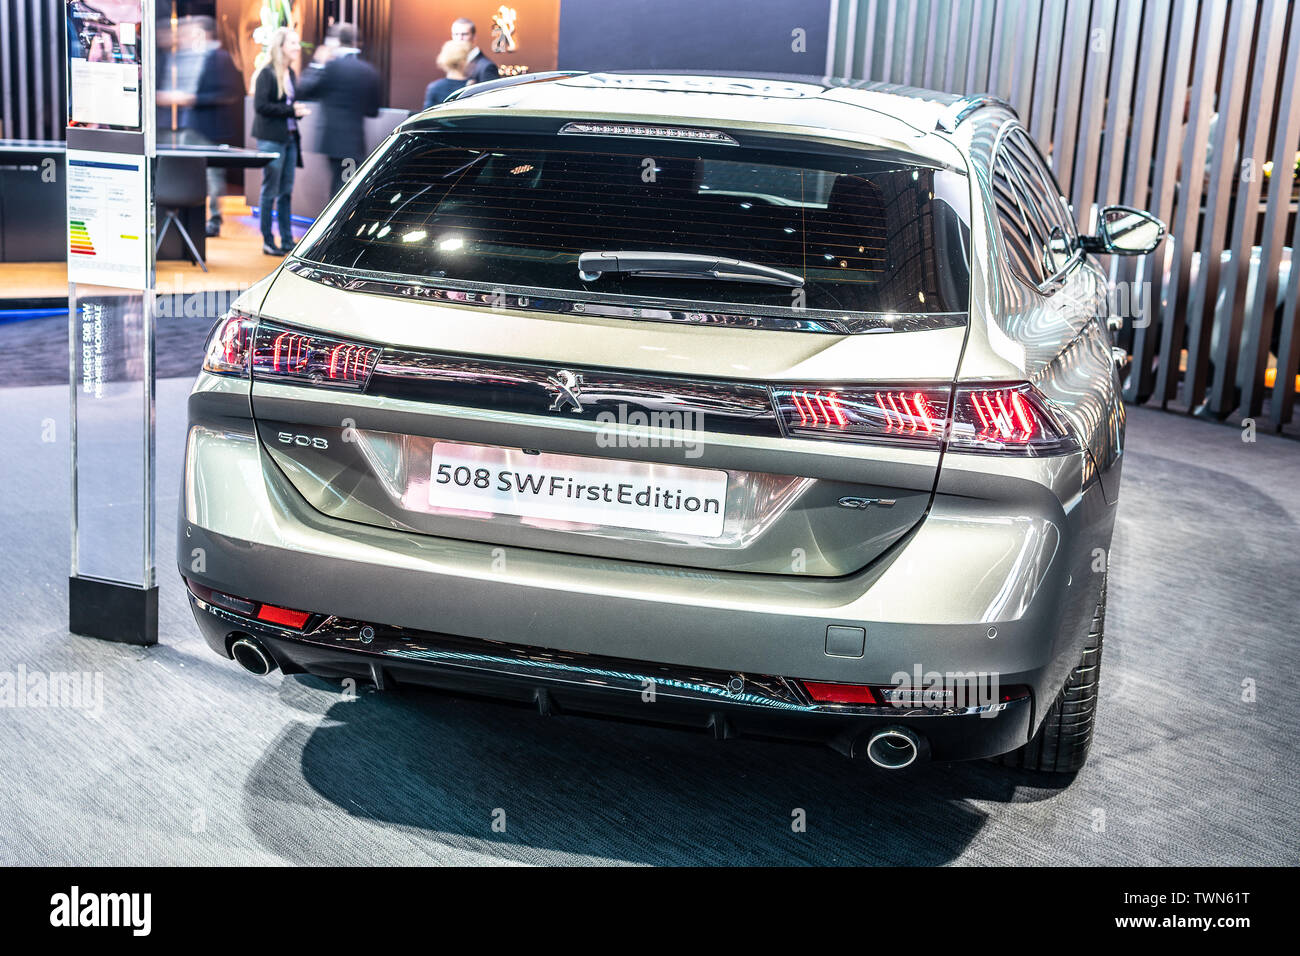 Paris, France, Oct 2018 all new Peugeot 508 SW GT First